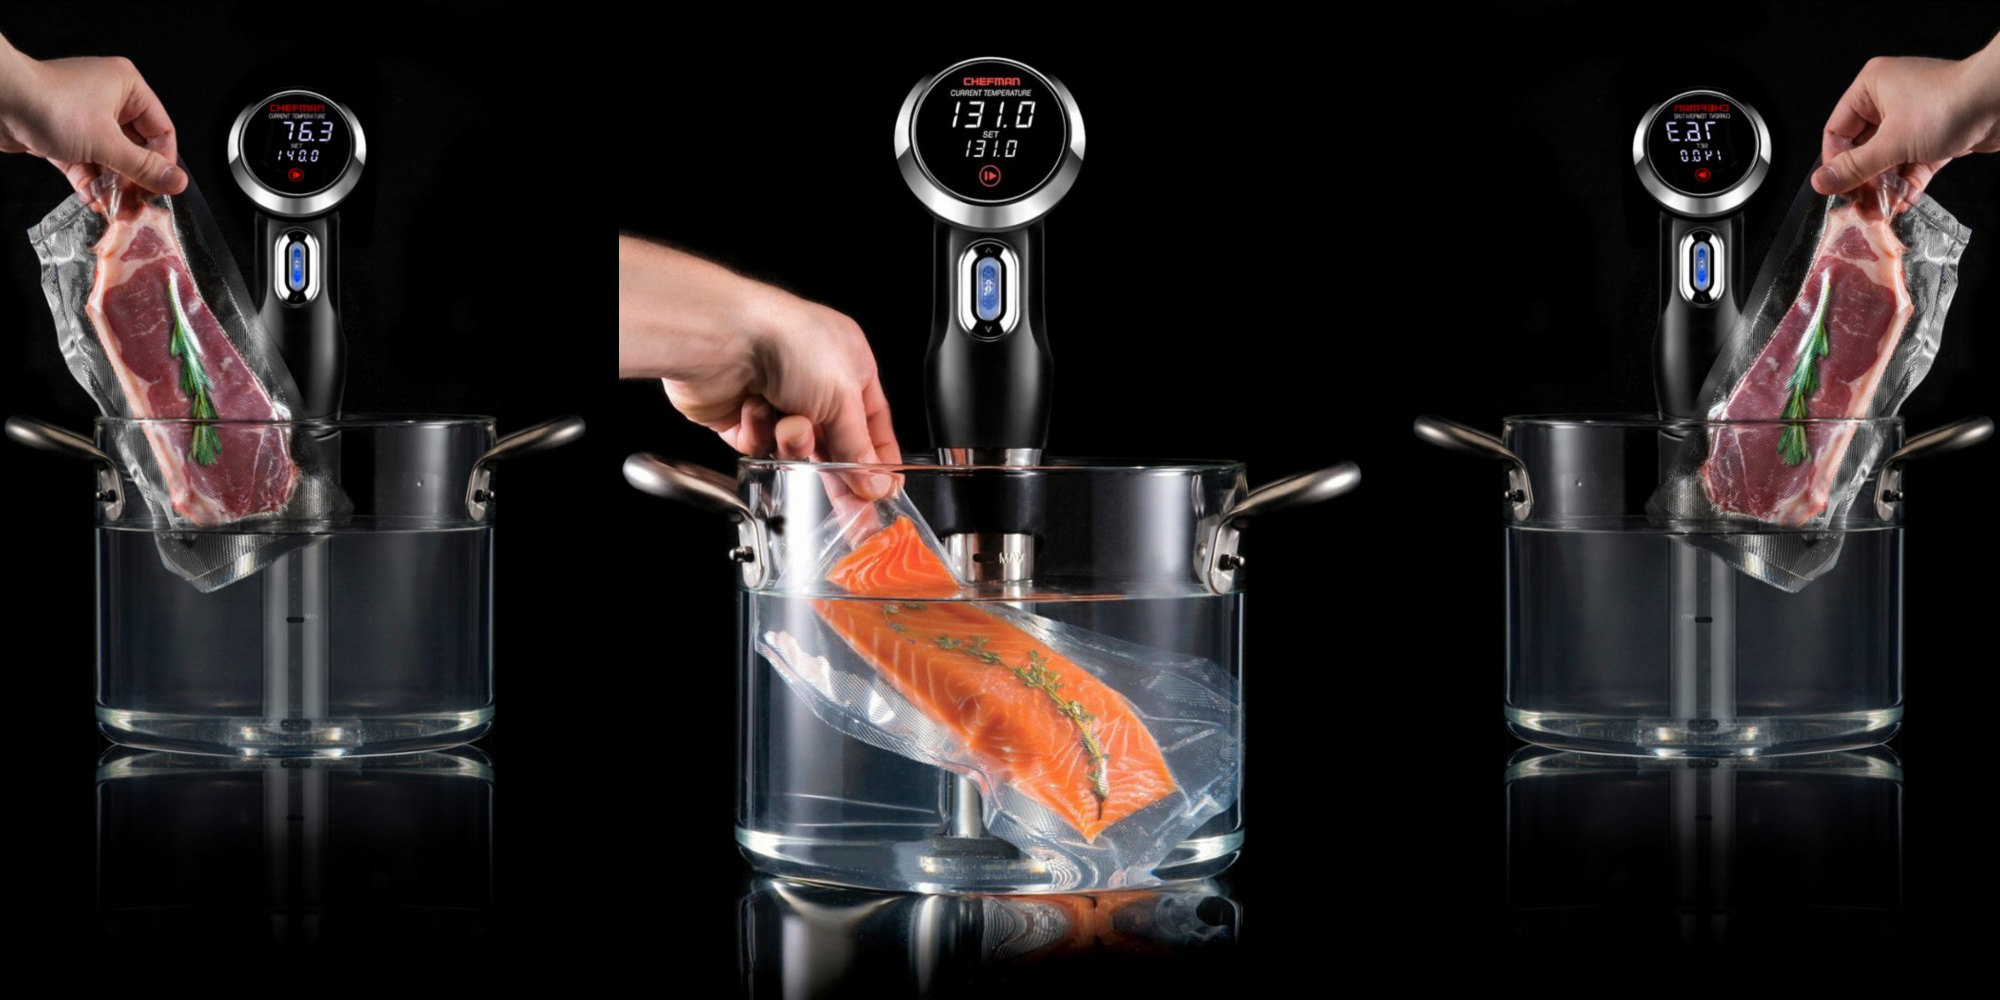 No need to spend Anova money to get sous vide at home, this Chefman is $50 (Amazon low)